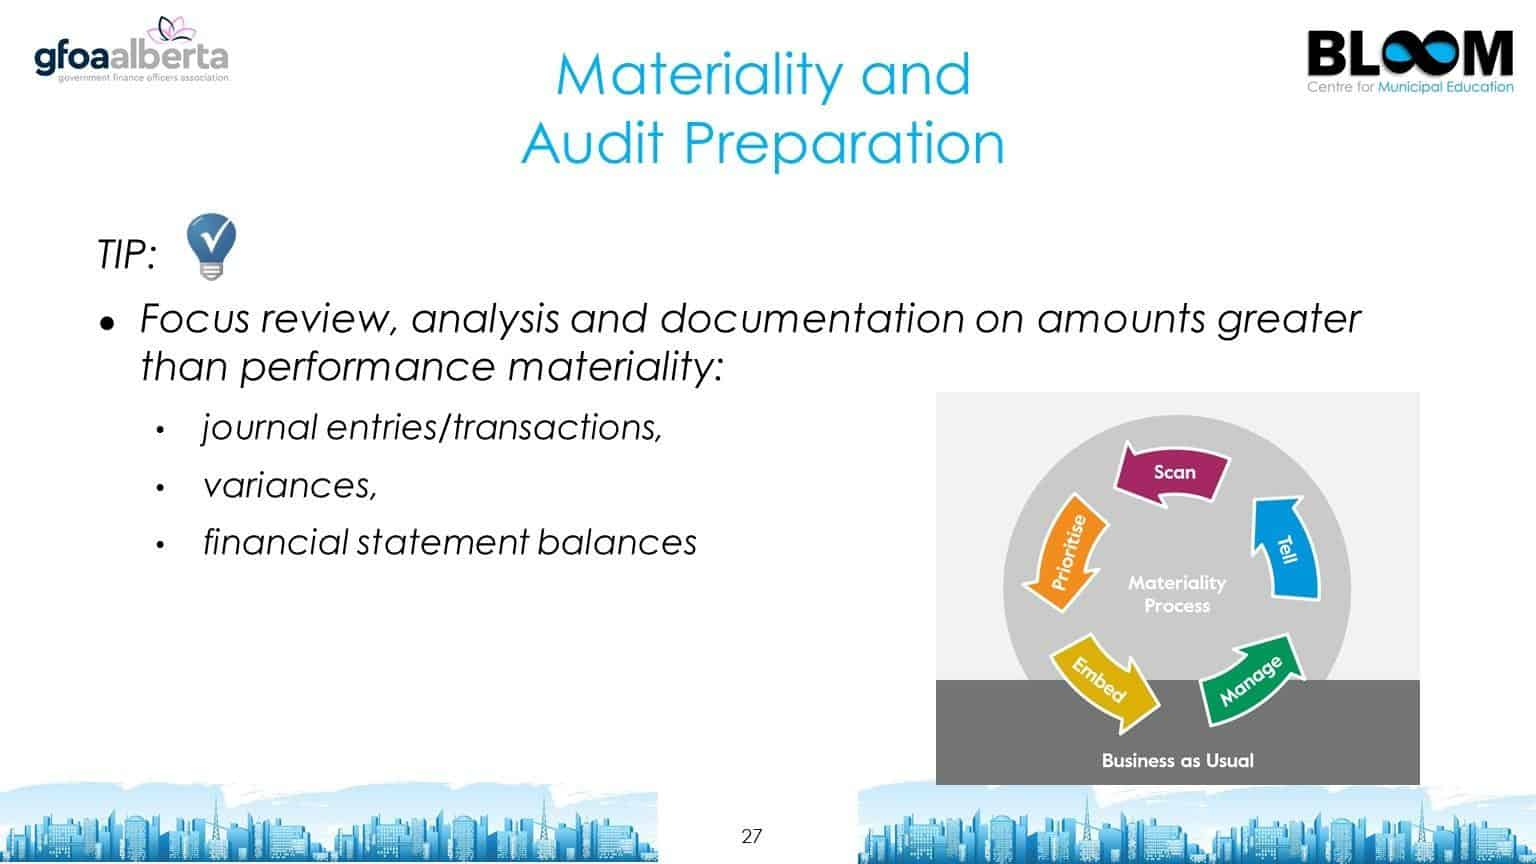 Materiality and audit preparation